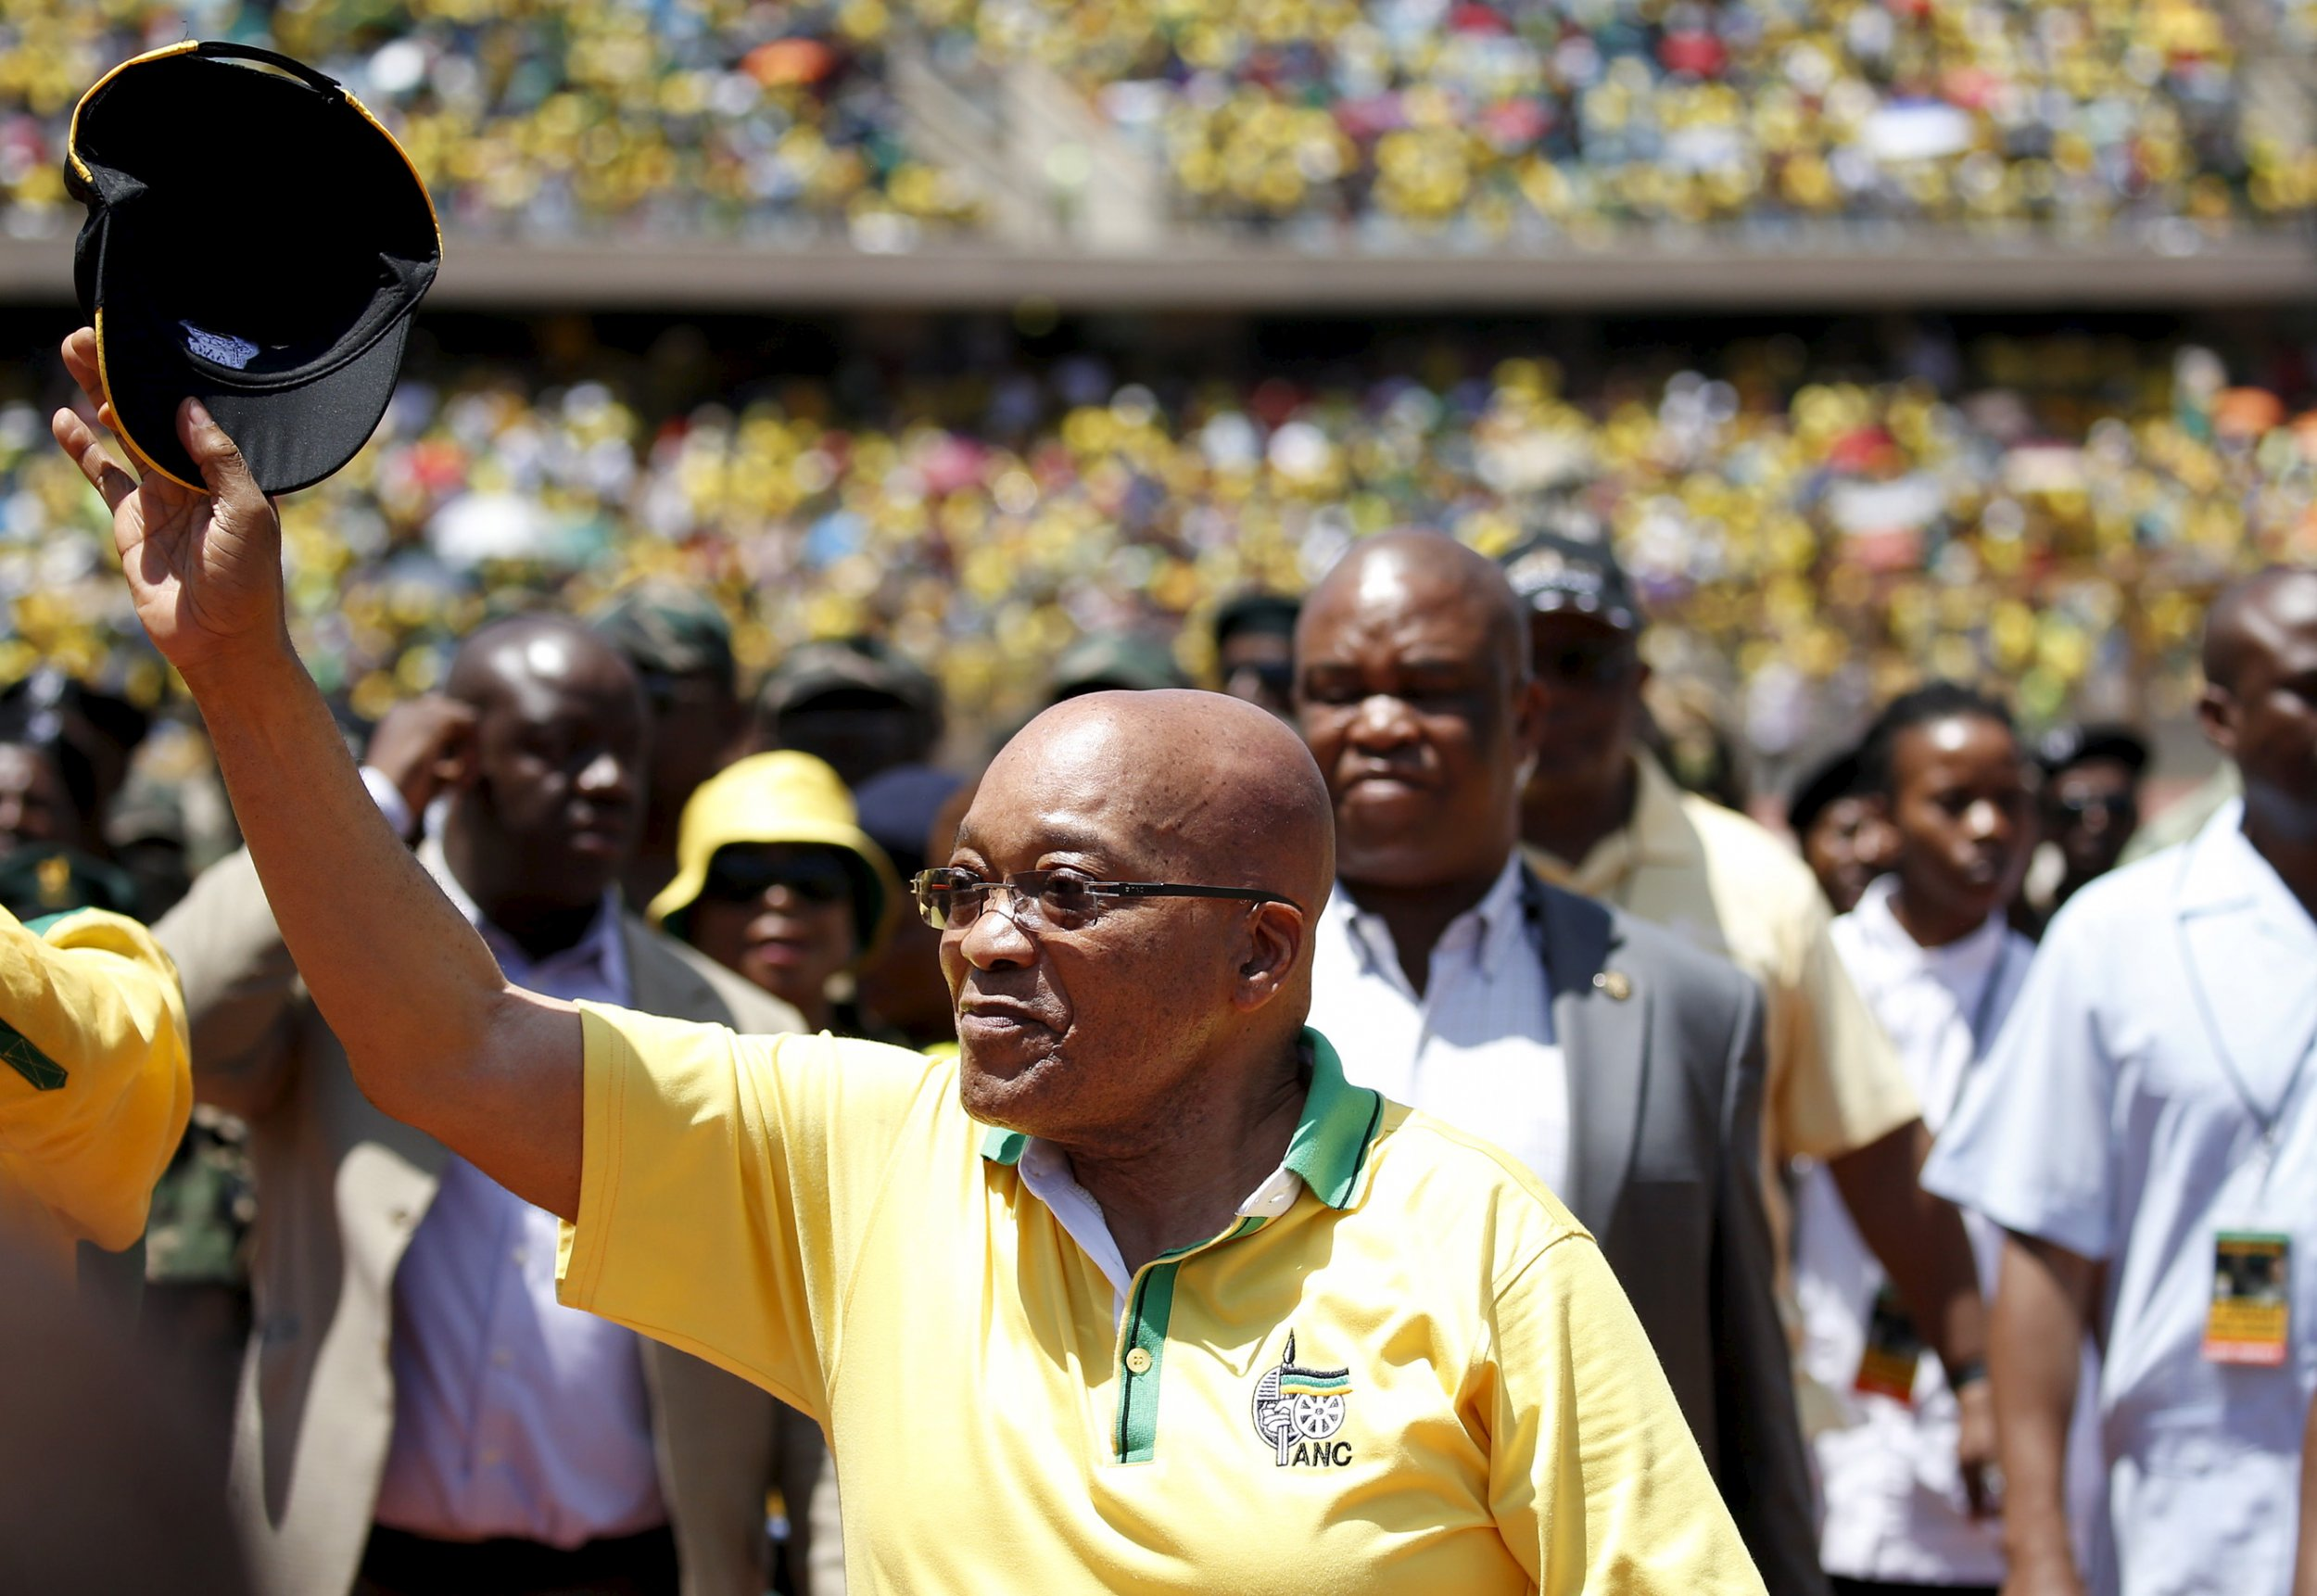 South African President Jacob Zuma attends the ANC's anniversary celebrations.